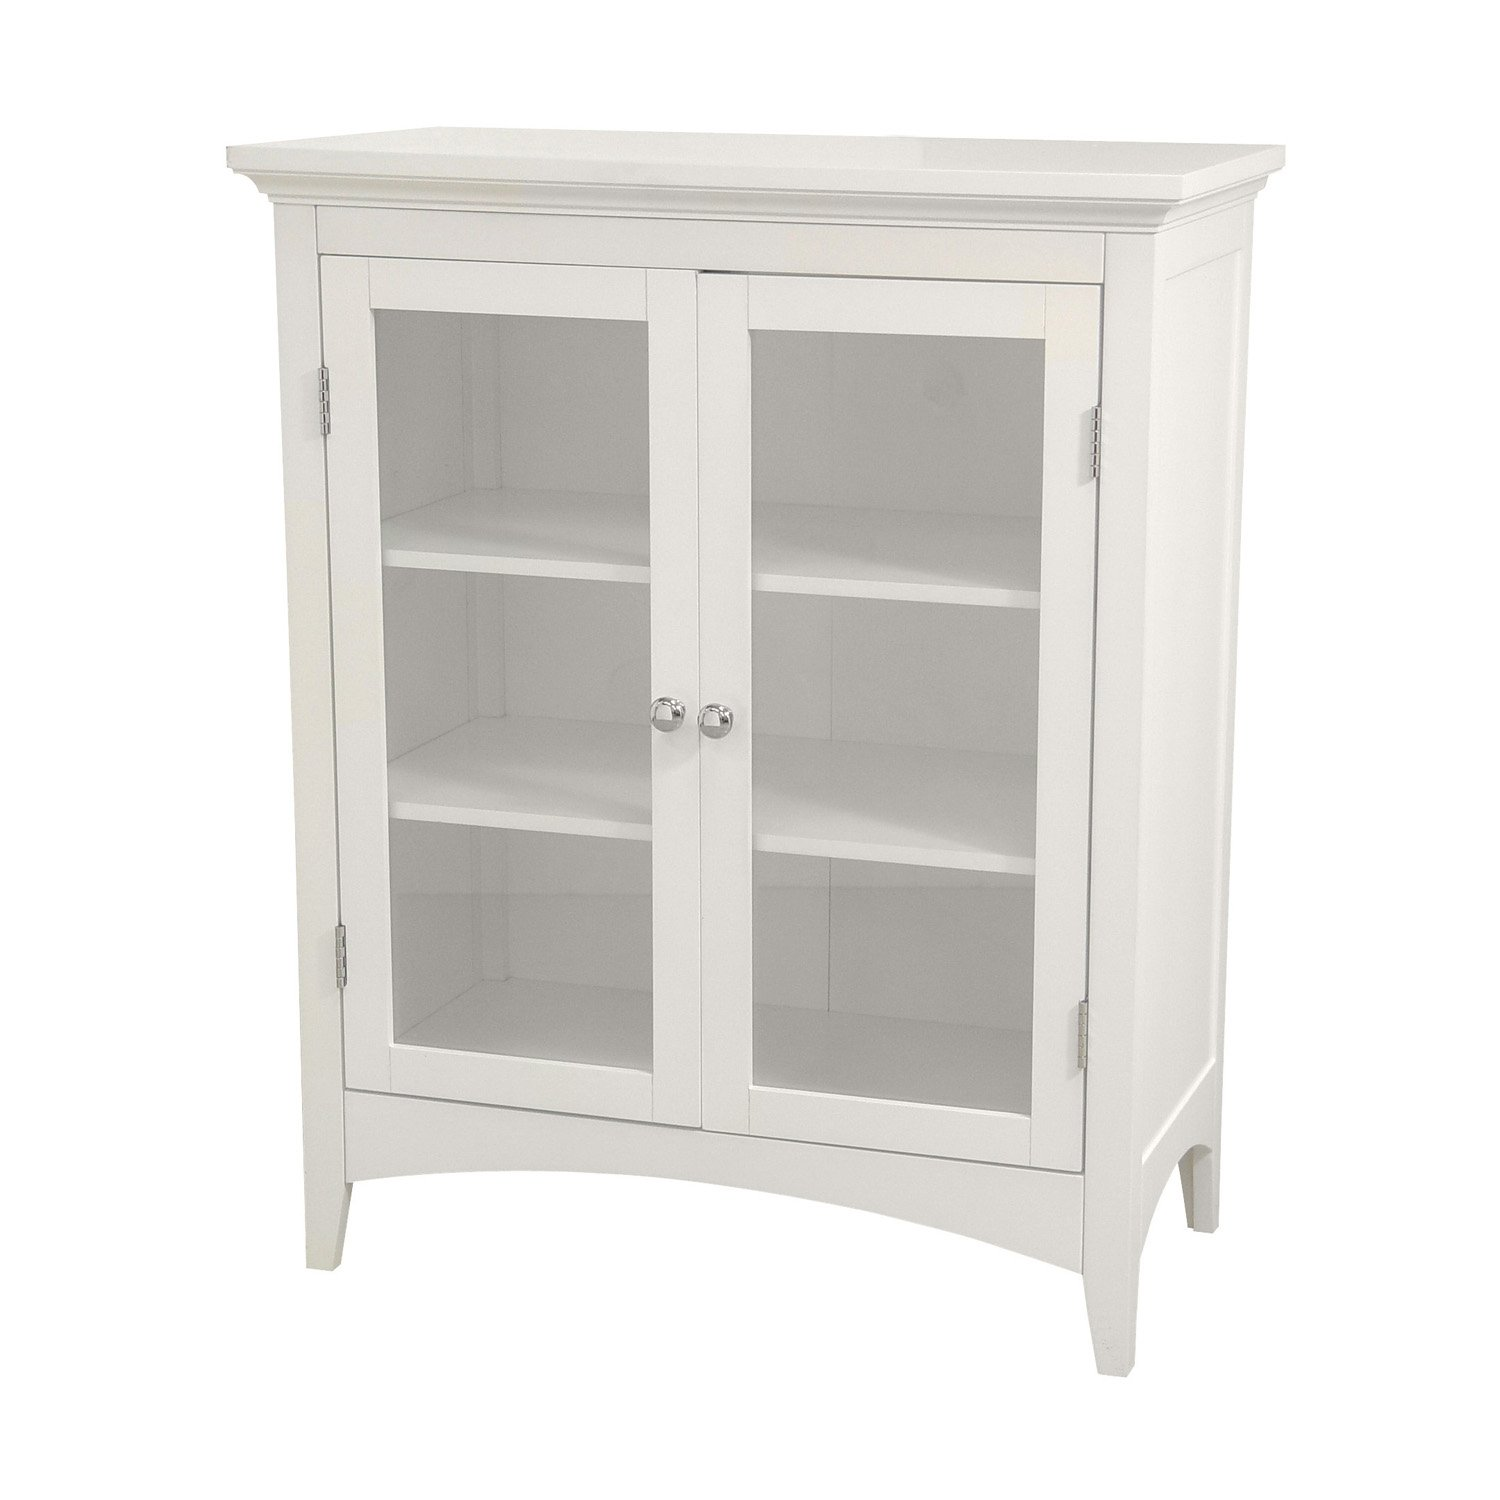 Amazon.com: Elegant Home Fashions Madison Collection Shelved Double Door  Floor Cabinet, White: Kitchen U0026 Dining